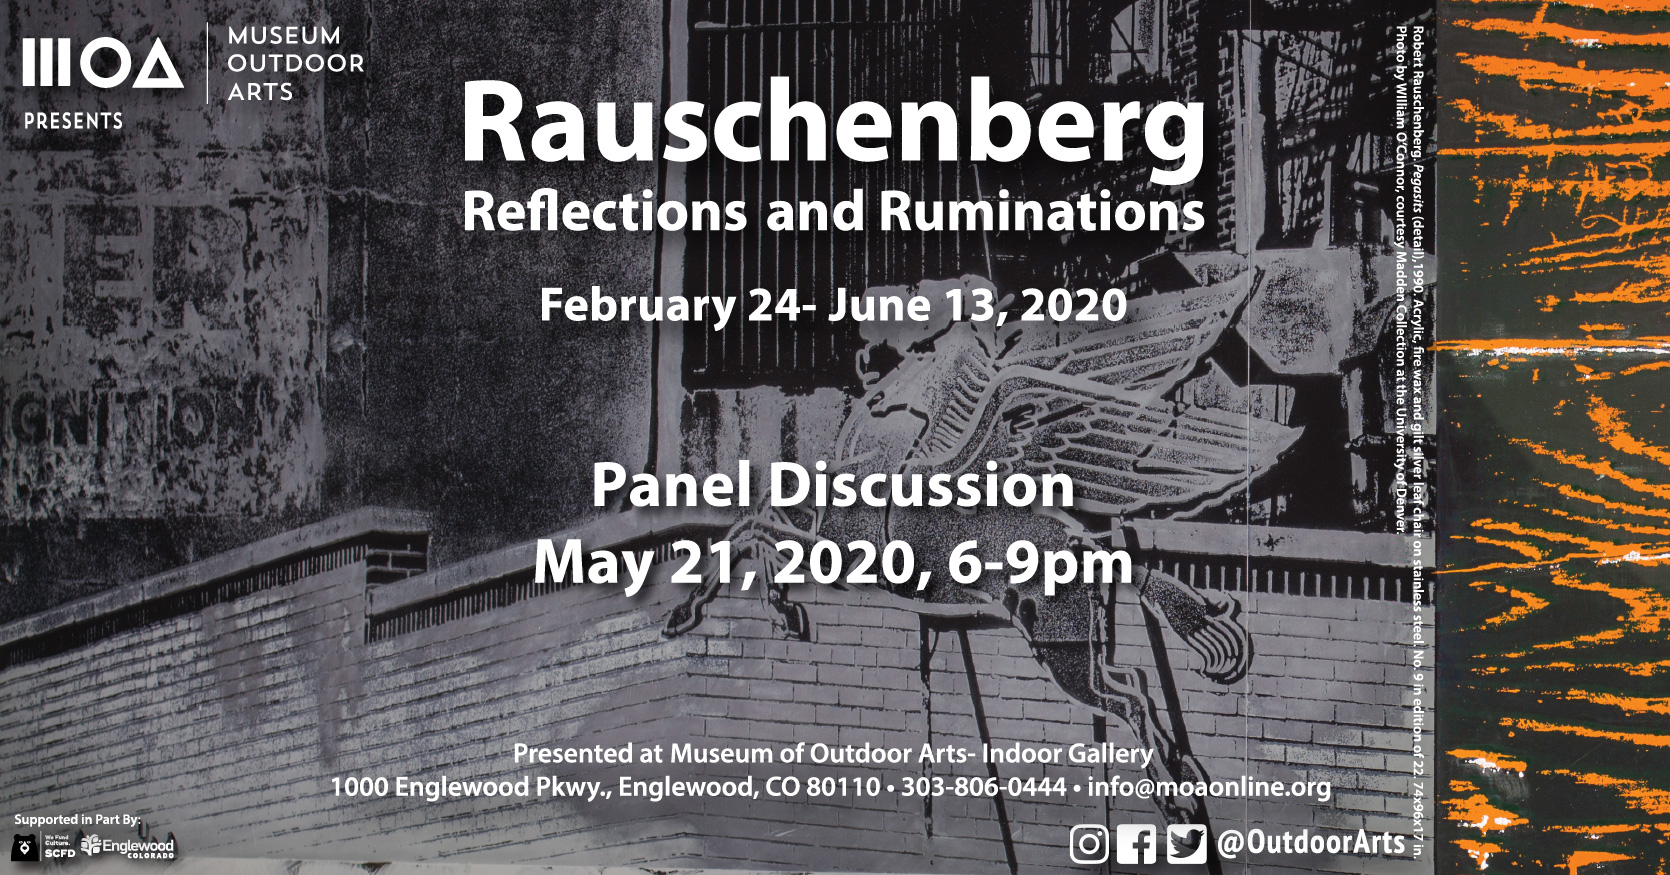 Tickets for Rauschenberg Panel Discussion in Englewood from ShowClix